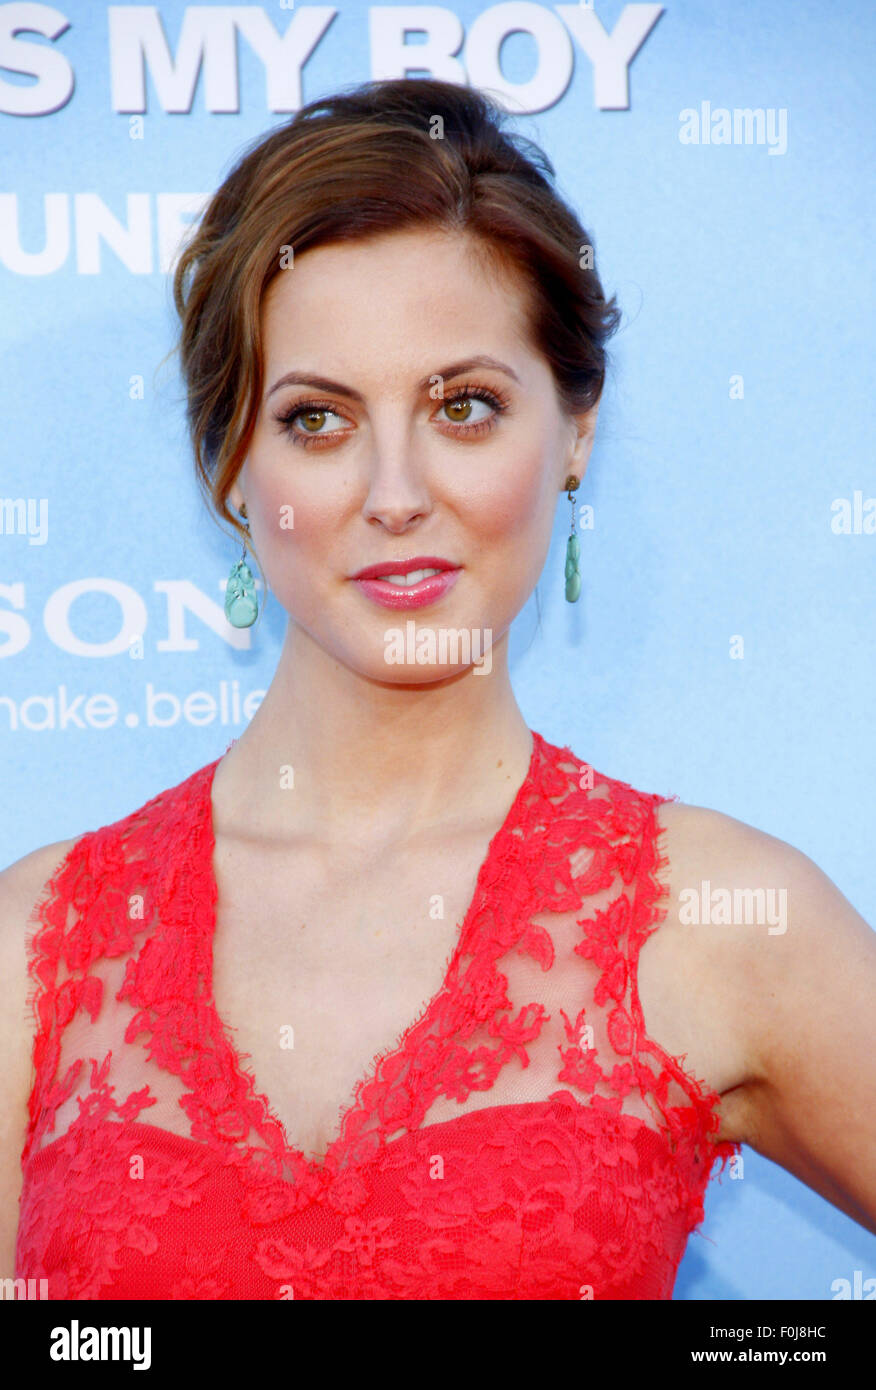 Eva amurri martino the meaning behind my tattoos photoshoot - 2019 year